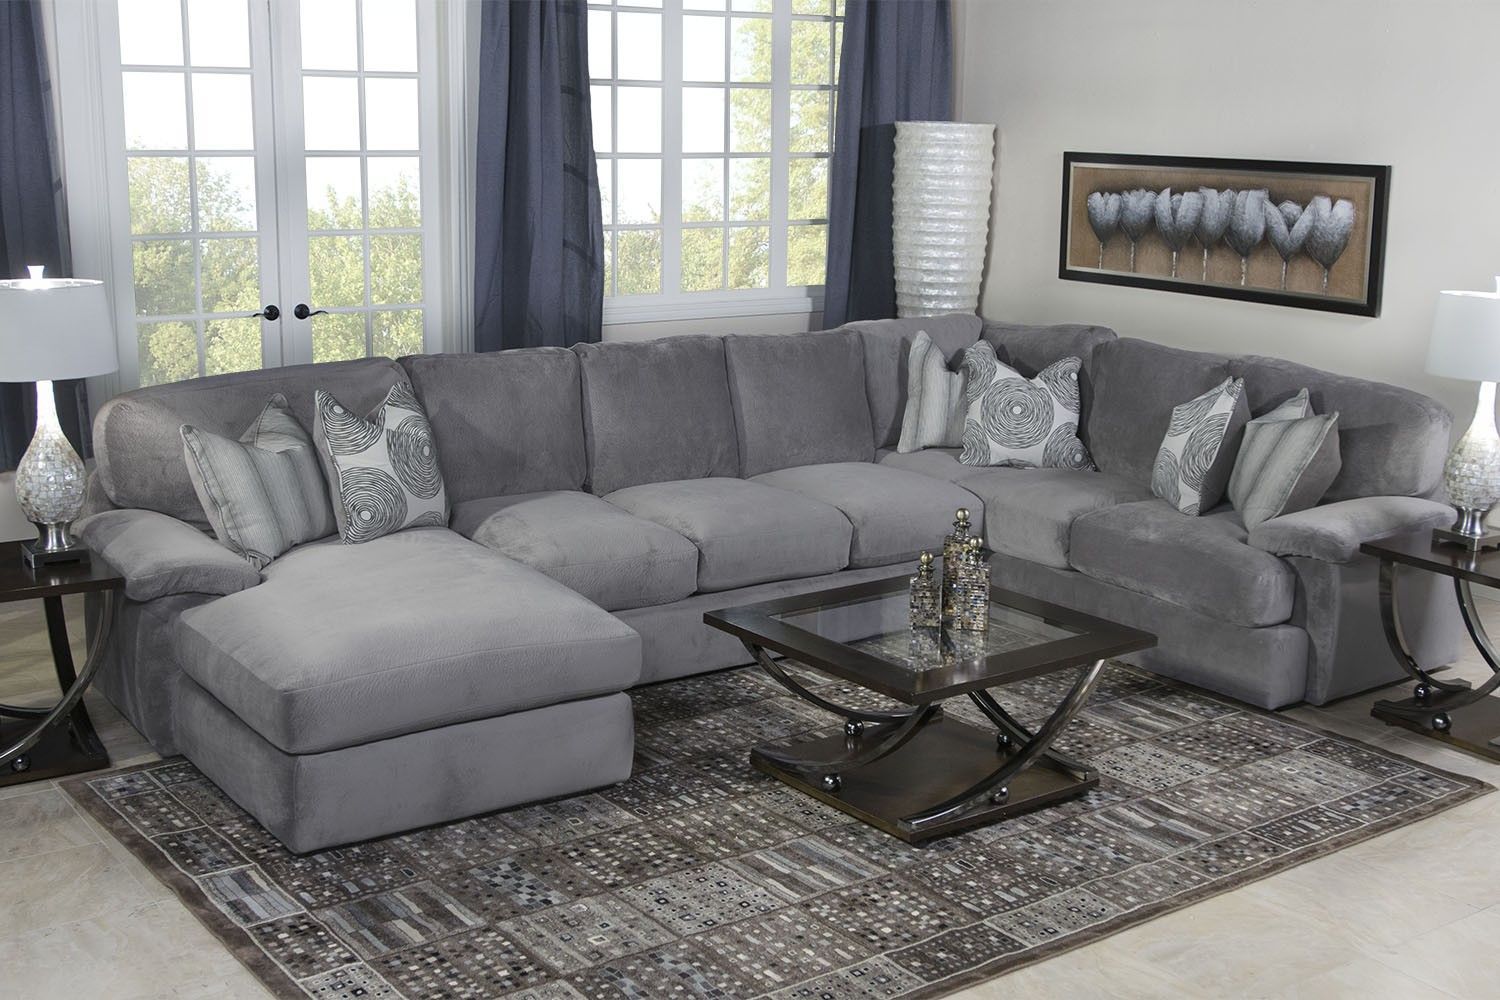 Key west sectional living room in gray living room mor for Living room gray couch